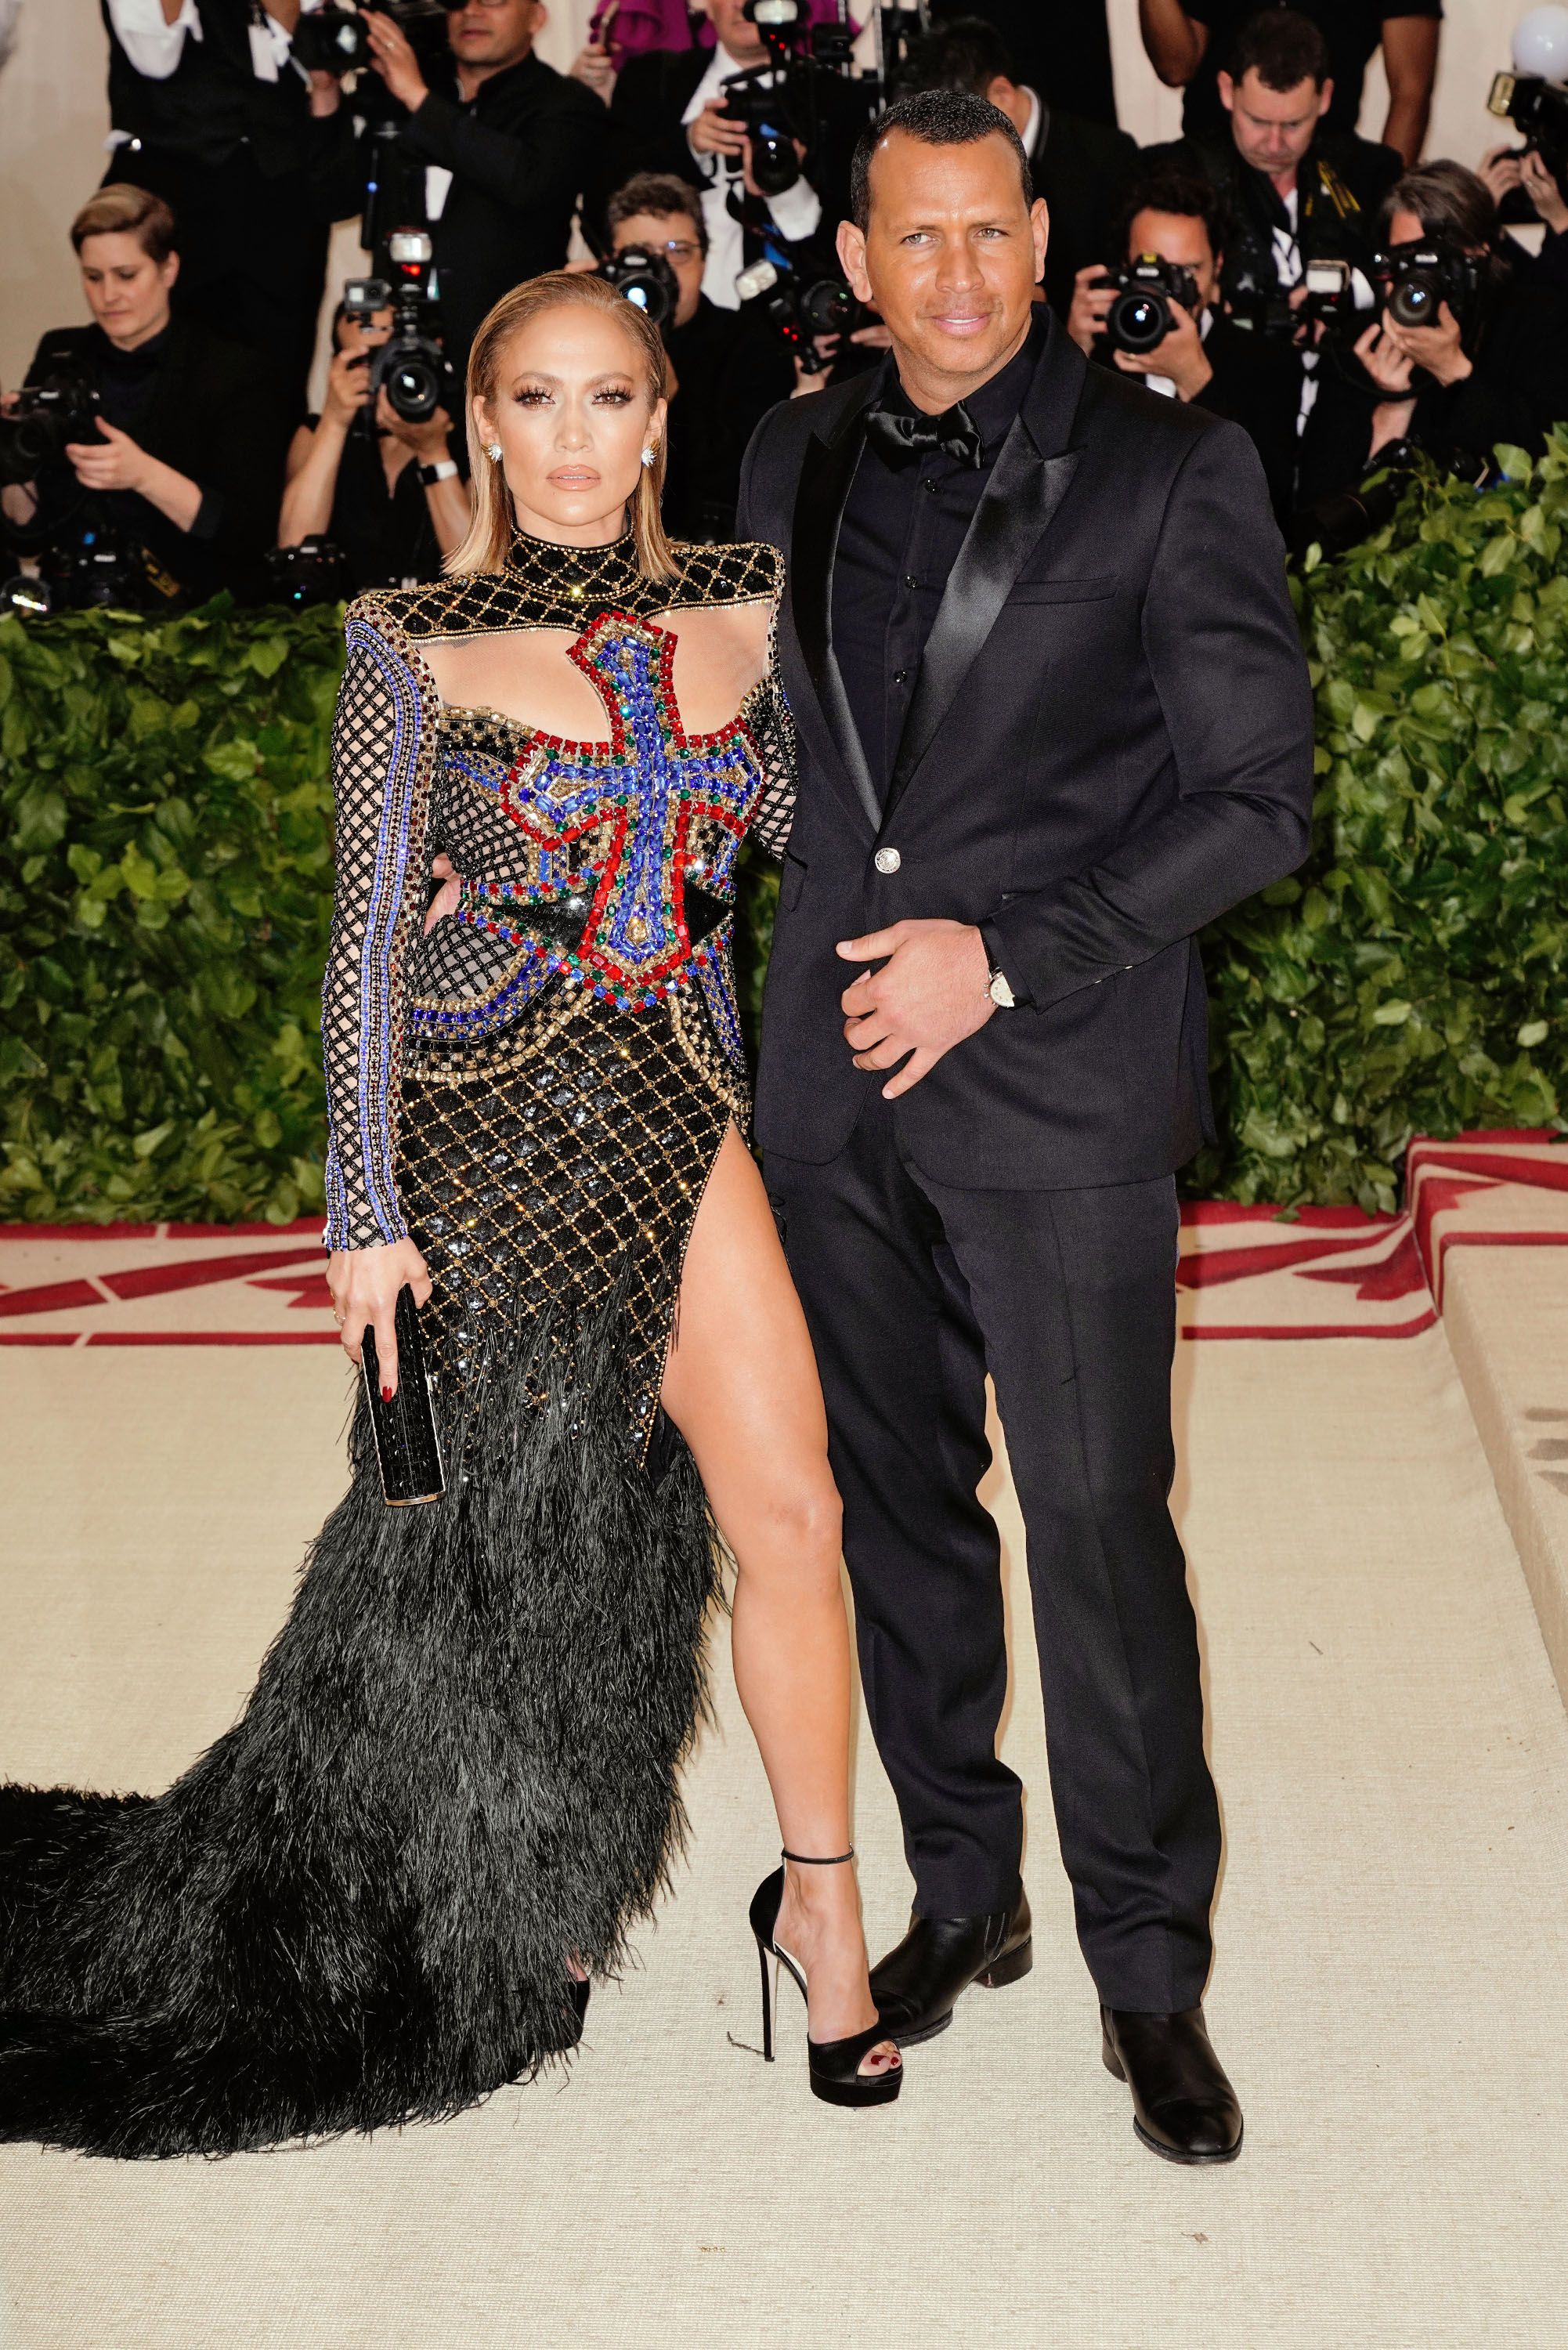 8e7bcfb6 7 Best Celebrity Couples at the 2018 Met Gala - Couples Who Attended the Met  Gala